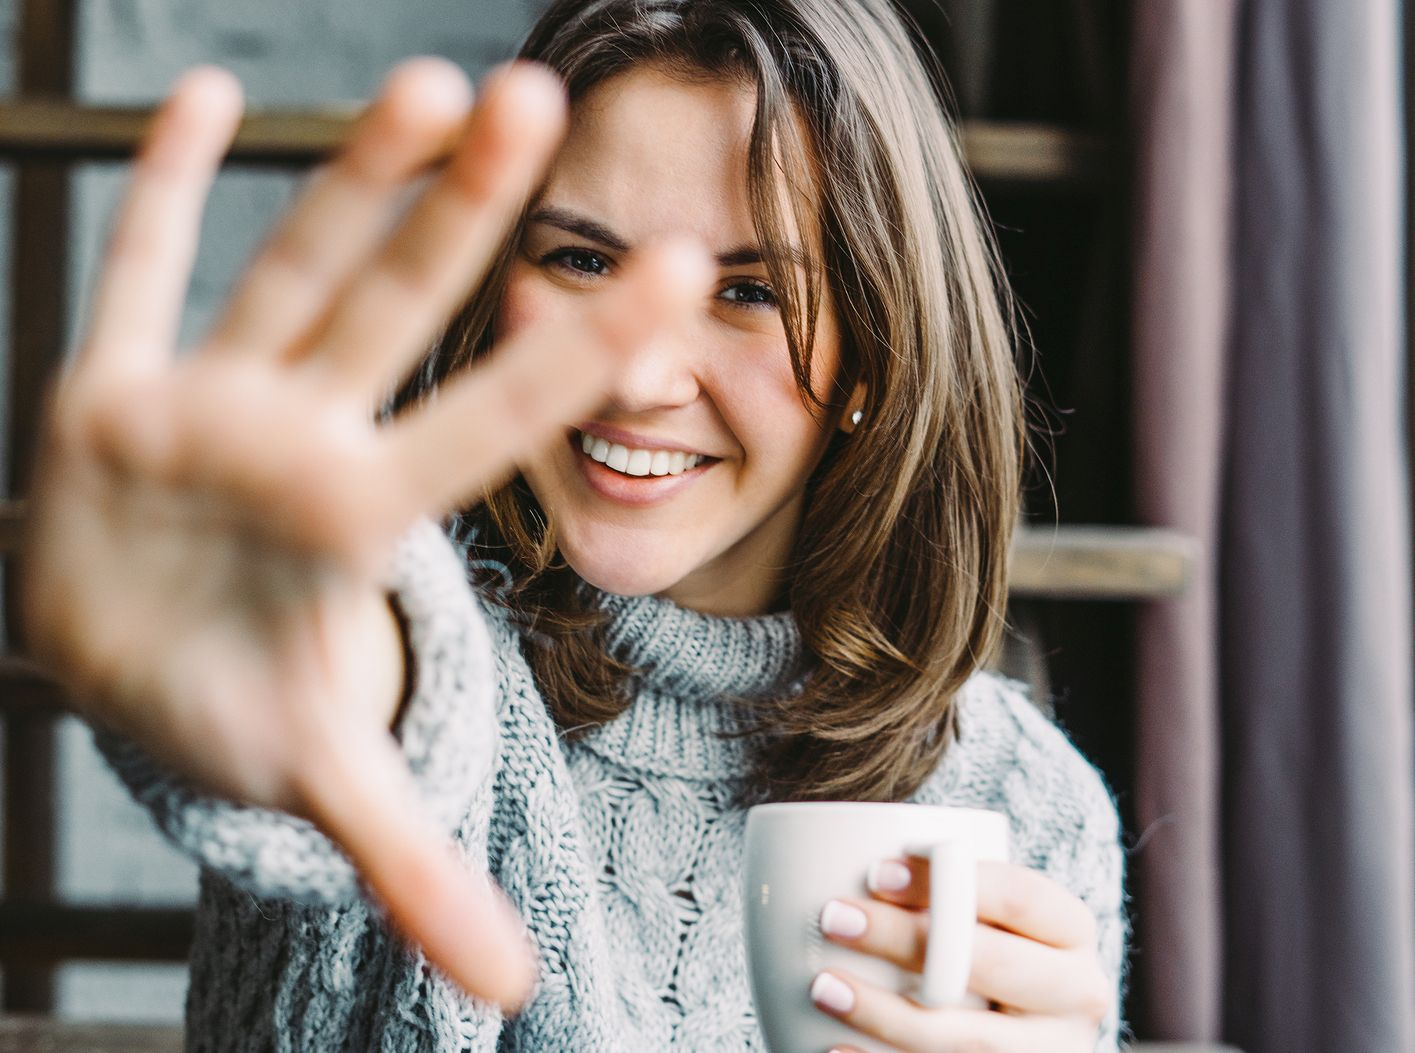 0Happy young woman drinking coffee in the morning